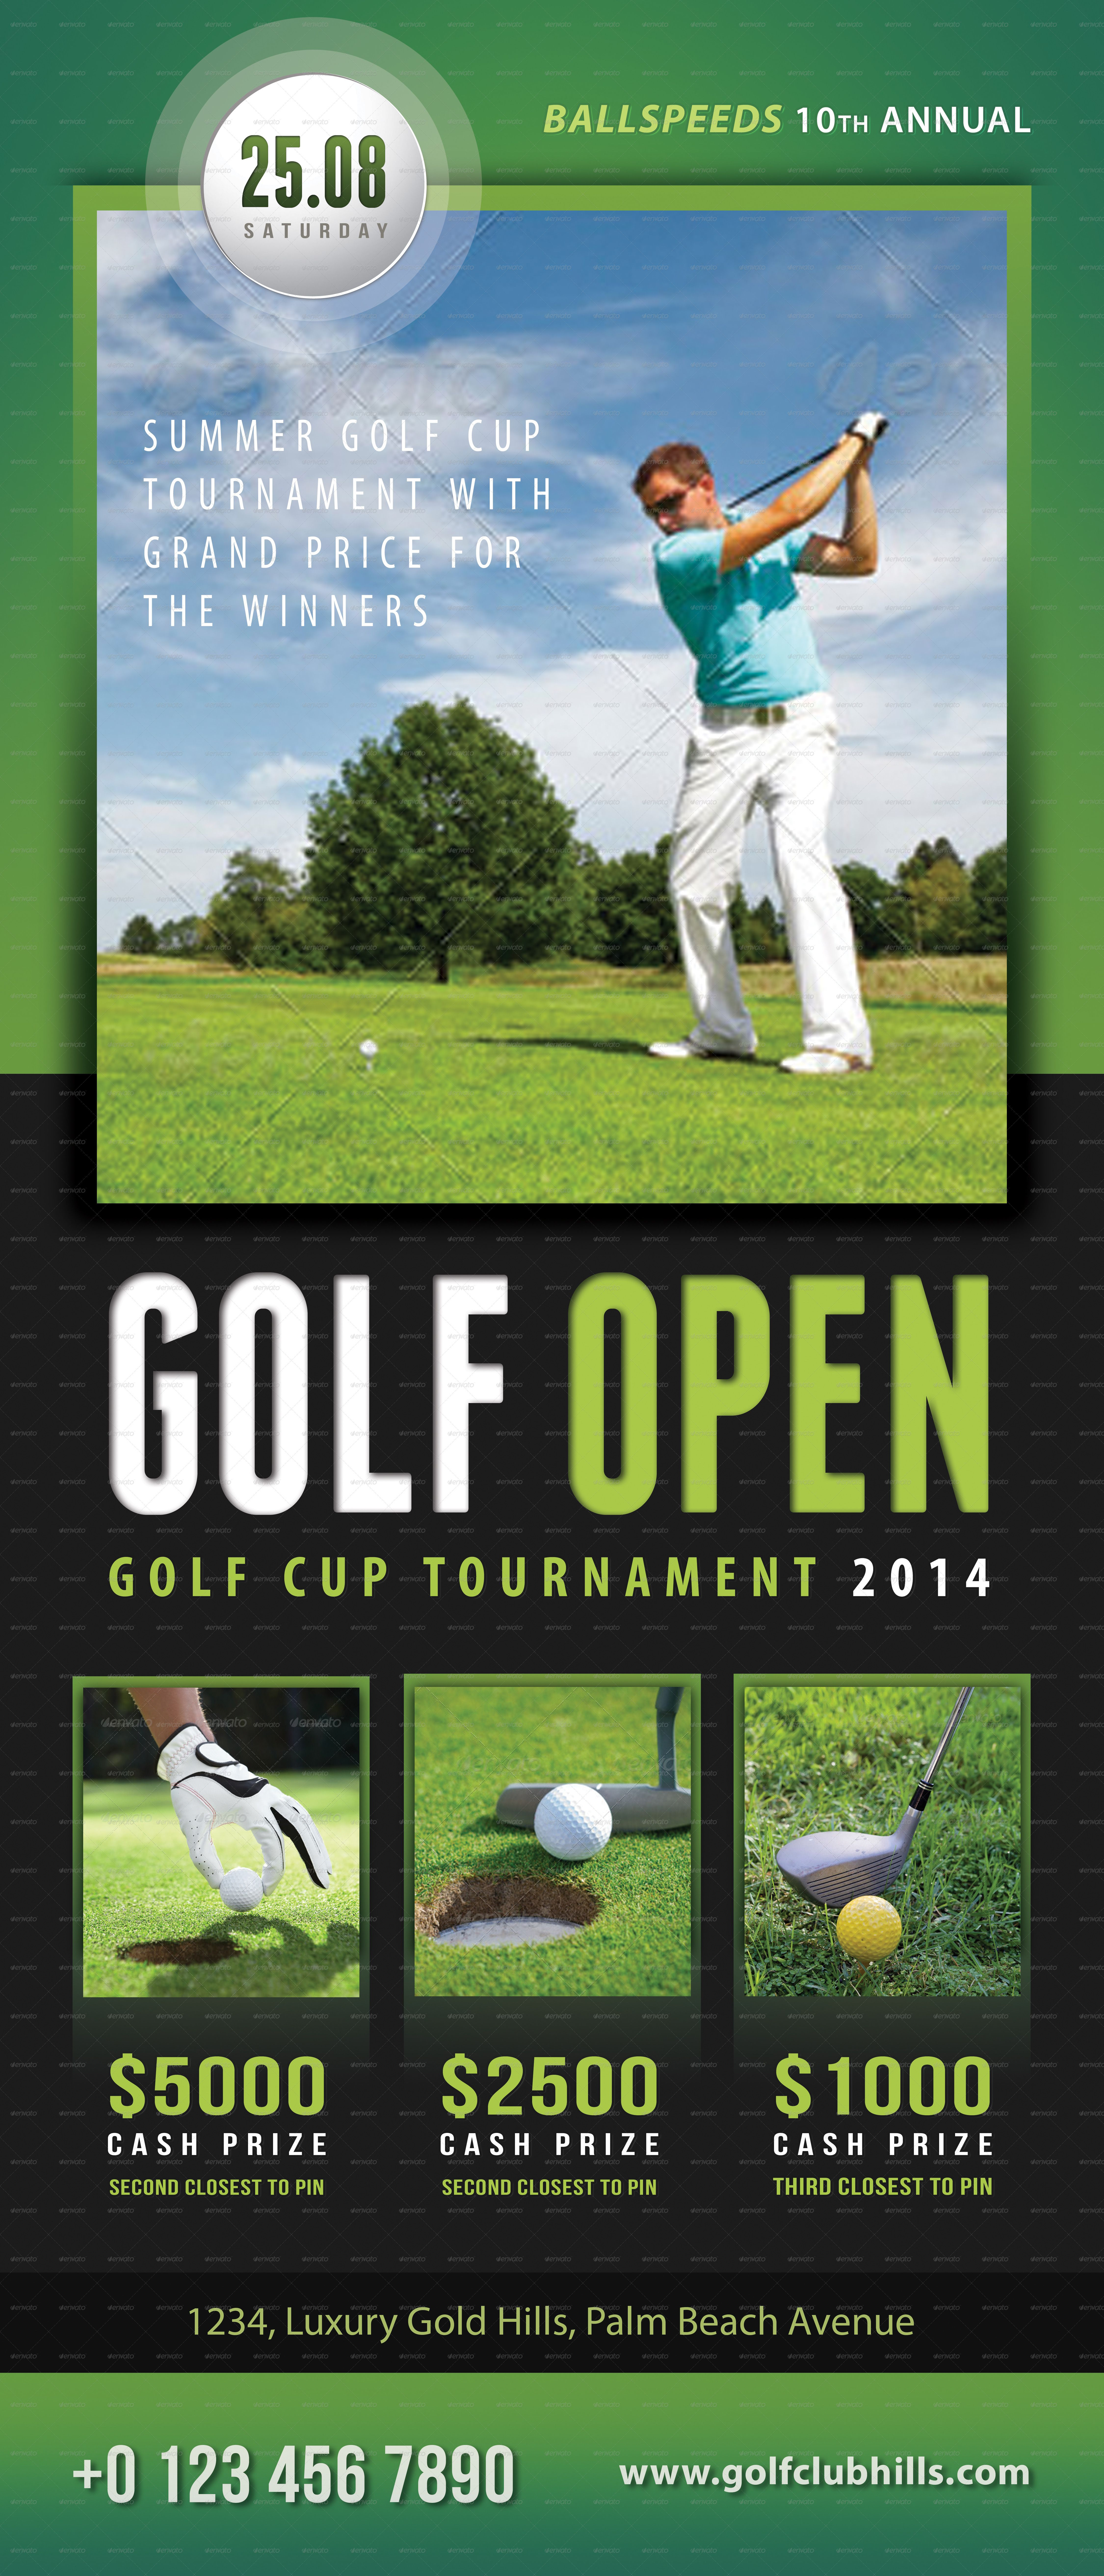 2 In 1 Golf Event Banners Bundle 02 Golf Event Event Banner Banner